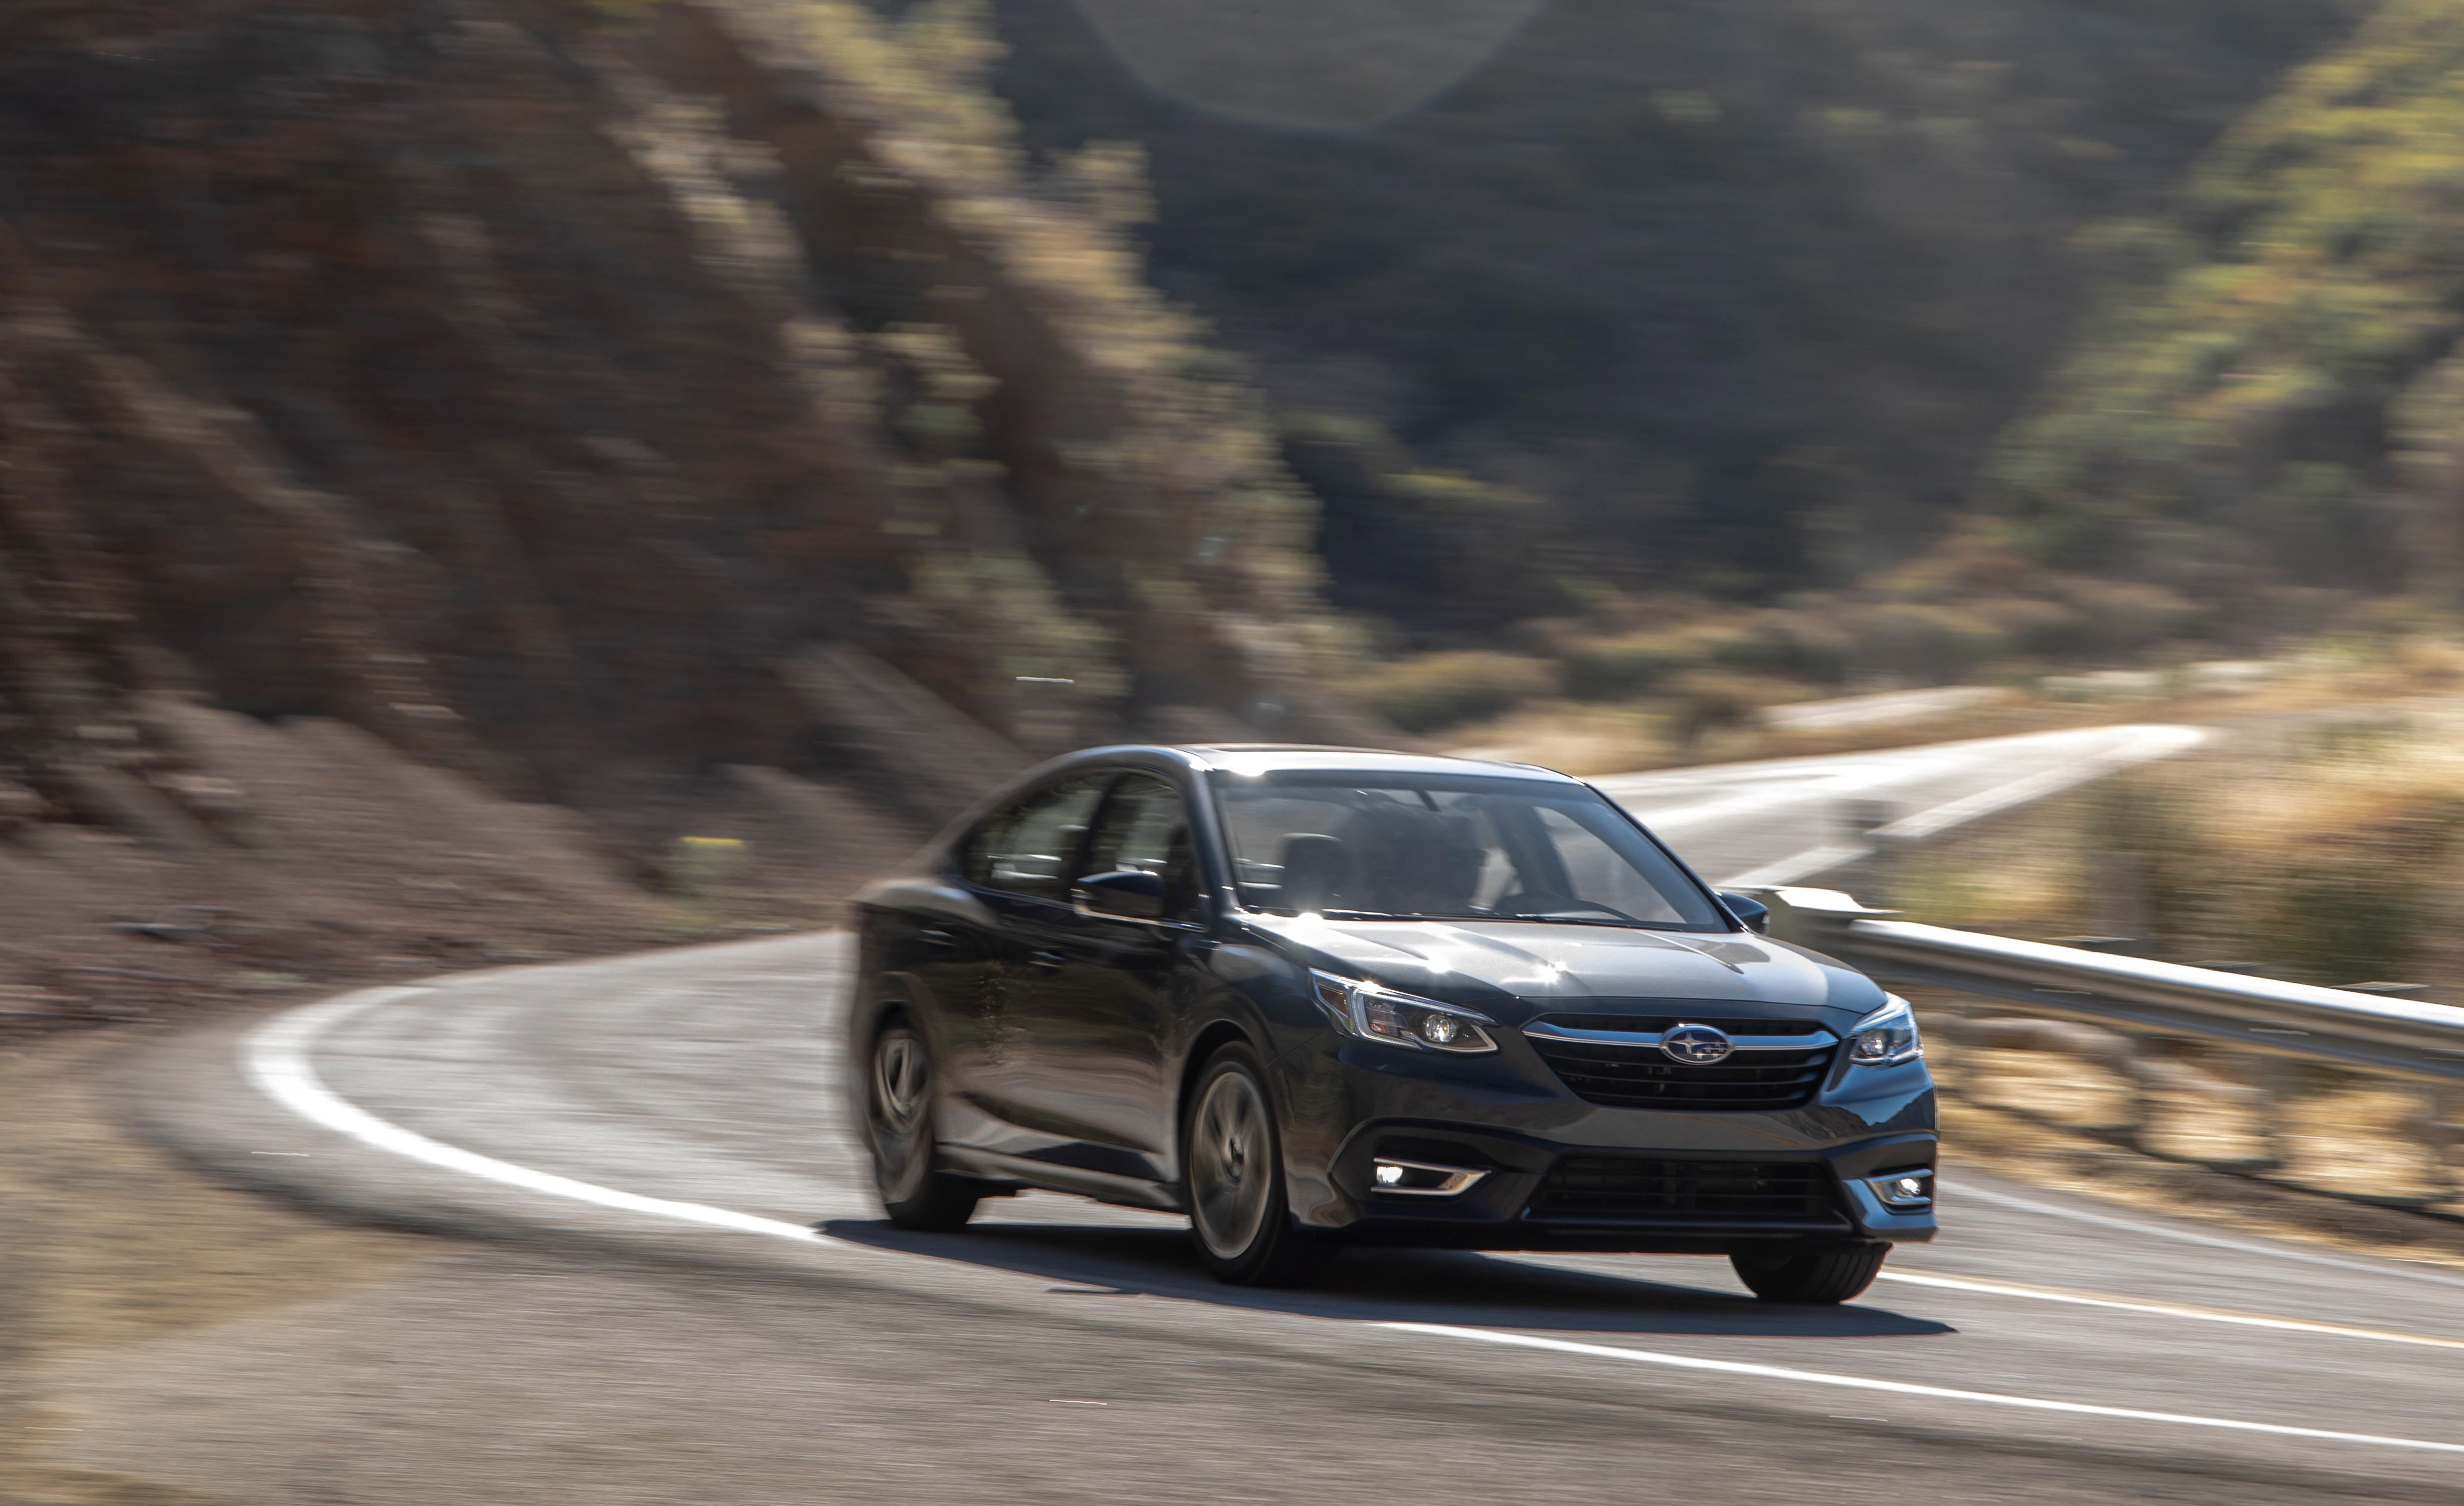 car pictures review: 2020 subaru legacy turbo 0 60